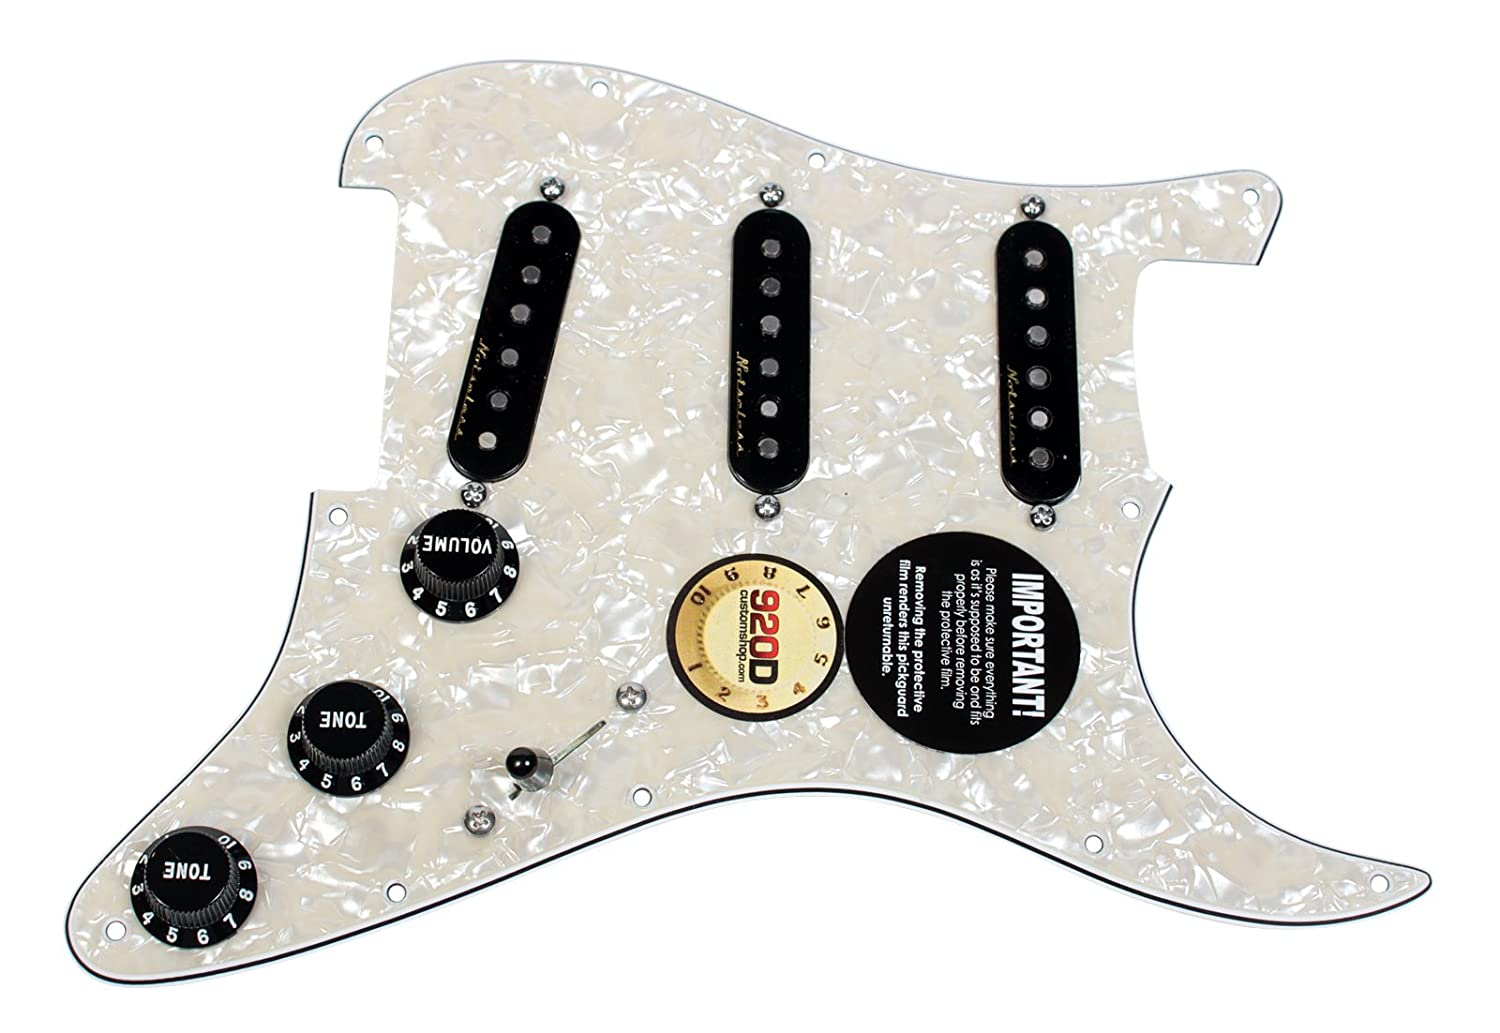 Fender Vintage Noiseless Loaded Strat Pickguard Aged White Pearl / Black fender pro fender cxa1 ie mic 3 button white